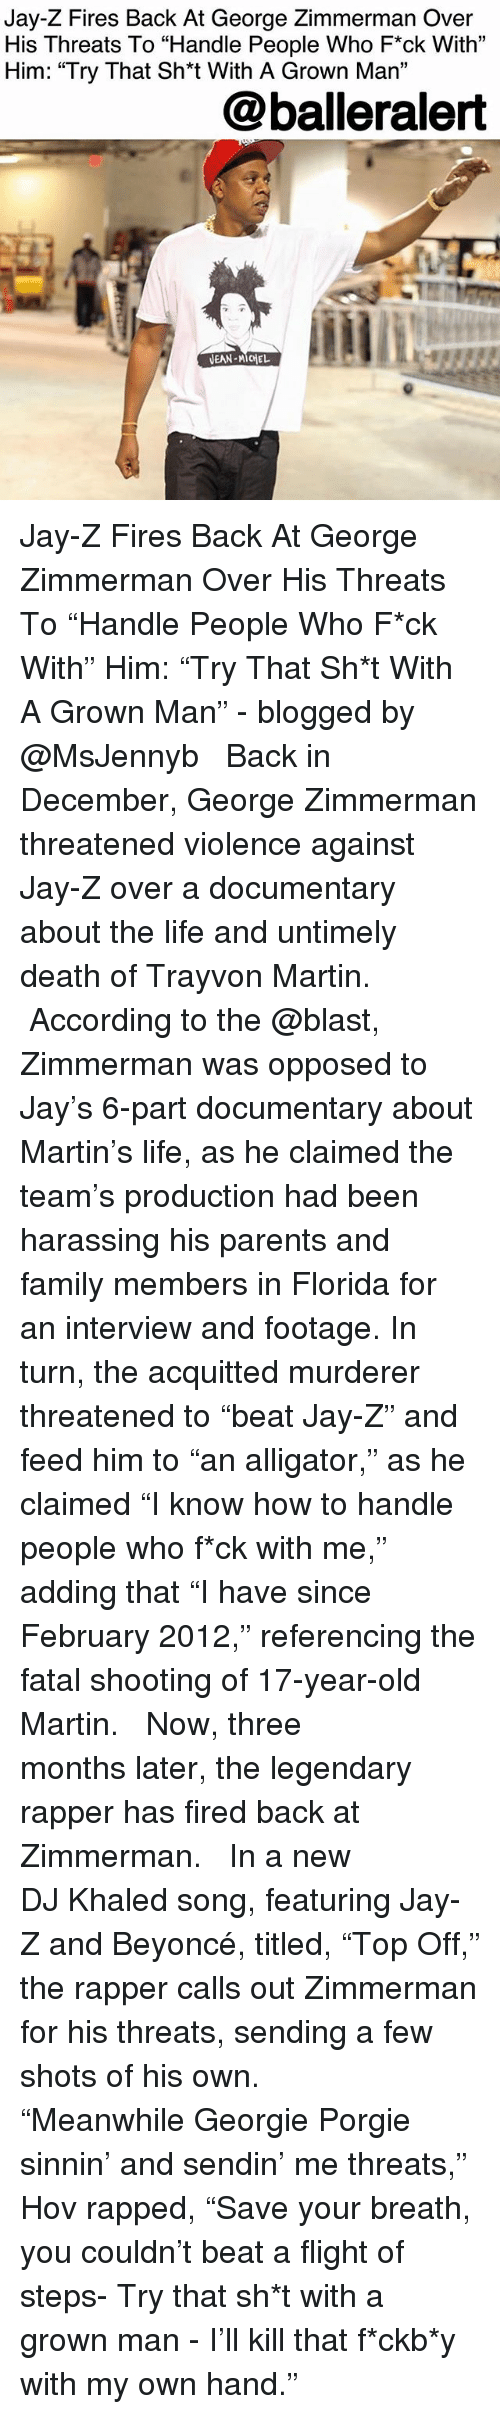 """Beyonce, DJ Khaled, and Family: Jay-Z Fires Back At George Zimmerman Over  His Threats To """"Handle People Who F*ck With""""  Him: """"Try That Sh*t With A Grown Ma""""  31  @balleralert Jay-Z Fires Back At George Zimmerman Over His Threats To """"Handle People Who F*ck With"""" Him: """"Try That Sh*t With A Grown Man"""" - blogged by @MsJennyb ⠀⠀⠀⠀⠀⠀⠀ ⠀⠀⠀⠀⠀⠀⠀ Back in December, George Zimmerman threatened violence against Jay-Z over a documentary about the life and untimely death of Trayvon Martin. ⠀⠀⠀⠀⠀⠀⠀ ⠀⠀⠀⠀⠀⠀⠀ According to the @blast, Zimmerman was opposed to Jay's 6-part documentary about Martin's life, as he claimed the team's production had been harassing his parents and family members in Florida for an interview and footage. In turn, the acquitted murderer threatened to """"beat Jay-Z"""" and feed him to """"an alligator,"""" as he claimed """"I know how to handle people who f*ck with me,"""" adding that """"I have since February 2012,"""" referencing the fatal shooting of 17-year-old Martin. ⠀⠀⠀⠀⠀⠀⠀ ⠀⠀⠀⠀⠀⠀⠀ Now, three months later, the legendary rapper has fired back at Zimmerman. ⠀⠀⠀⠀⠀⠀⠀ ⠀⠀⠀⠀⠀⠀⠀ In a new DJ Khaled song, featuring Jay-Z and Beyoncé, titled, """"Top Off,"""" the rapper calls out Zimmerman for his threats, sending a few shots of his own. ⠀⠀⠀⠀⠀⠀⠀ ⠀⠀⠀⠀⠀⠀⠀ """"Meanwhile Georgie Porgie sinnin' and sendin' me threats,"""" Hov rapped, """"Save your breath, you couldn't beat a flight of steps- Try that sh*t with a grown man - I'll kill that f*ckb*y with my own hand."""""""